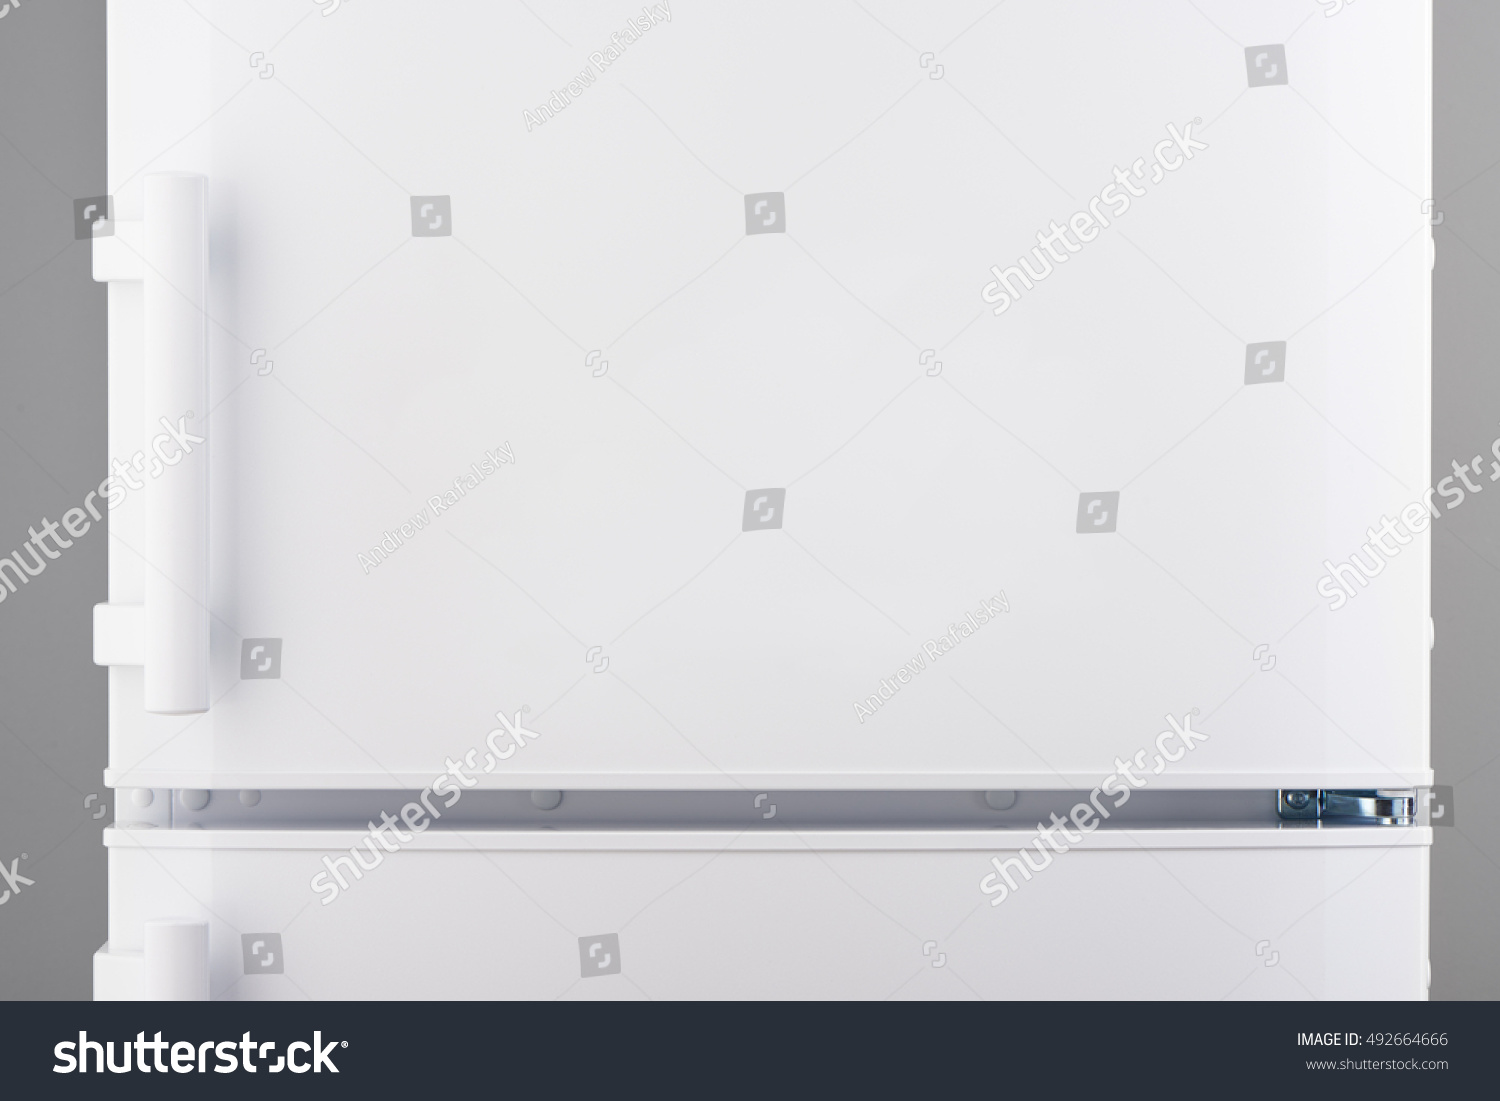 White Refrigerator On Gray Background Stock Photo 492664666 ...